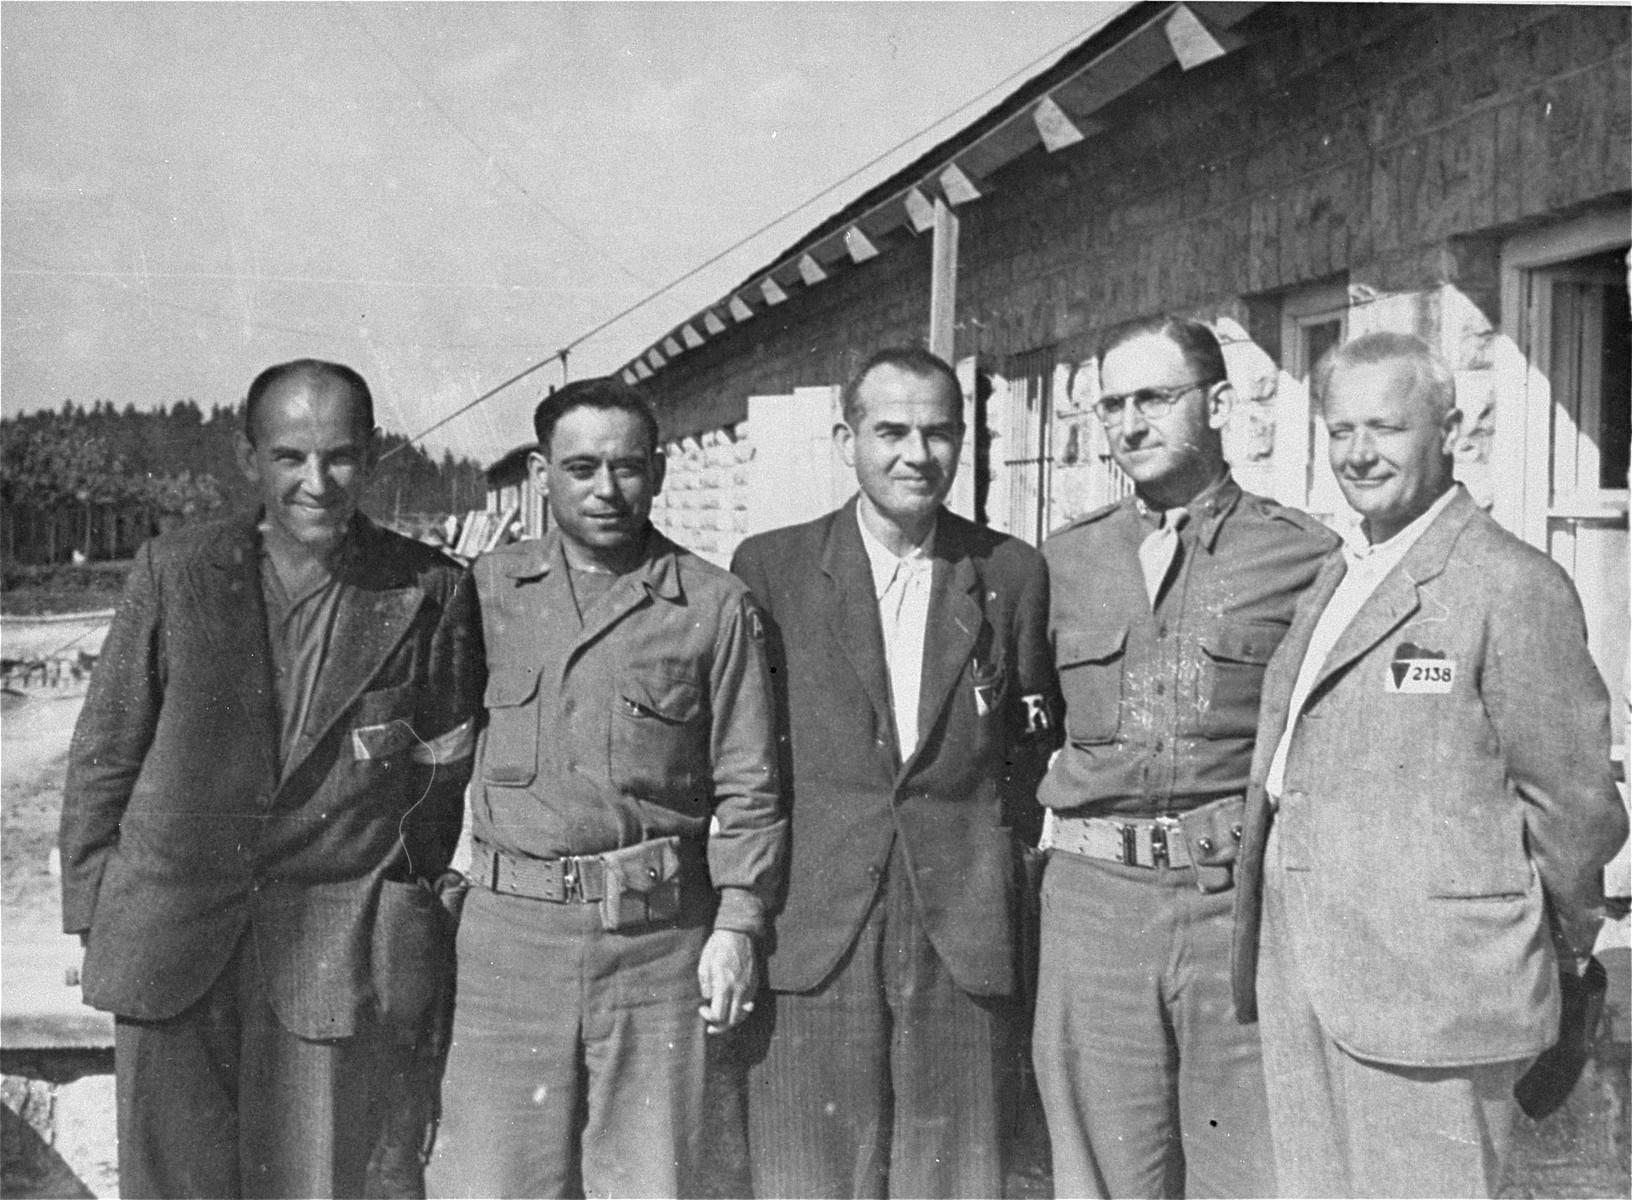 Mauthausen survivors pose with two American soldiers.  Pictured from left to right are: George Havelka from Prague; Jack Nowitz; Martin Ernor from Insbruck; Major Eugene Cohen (donor), and Joseph Ulbrecht, a former bank director from Prague.